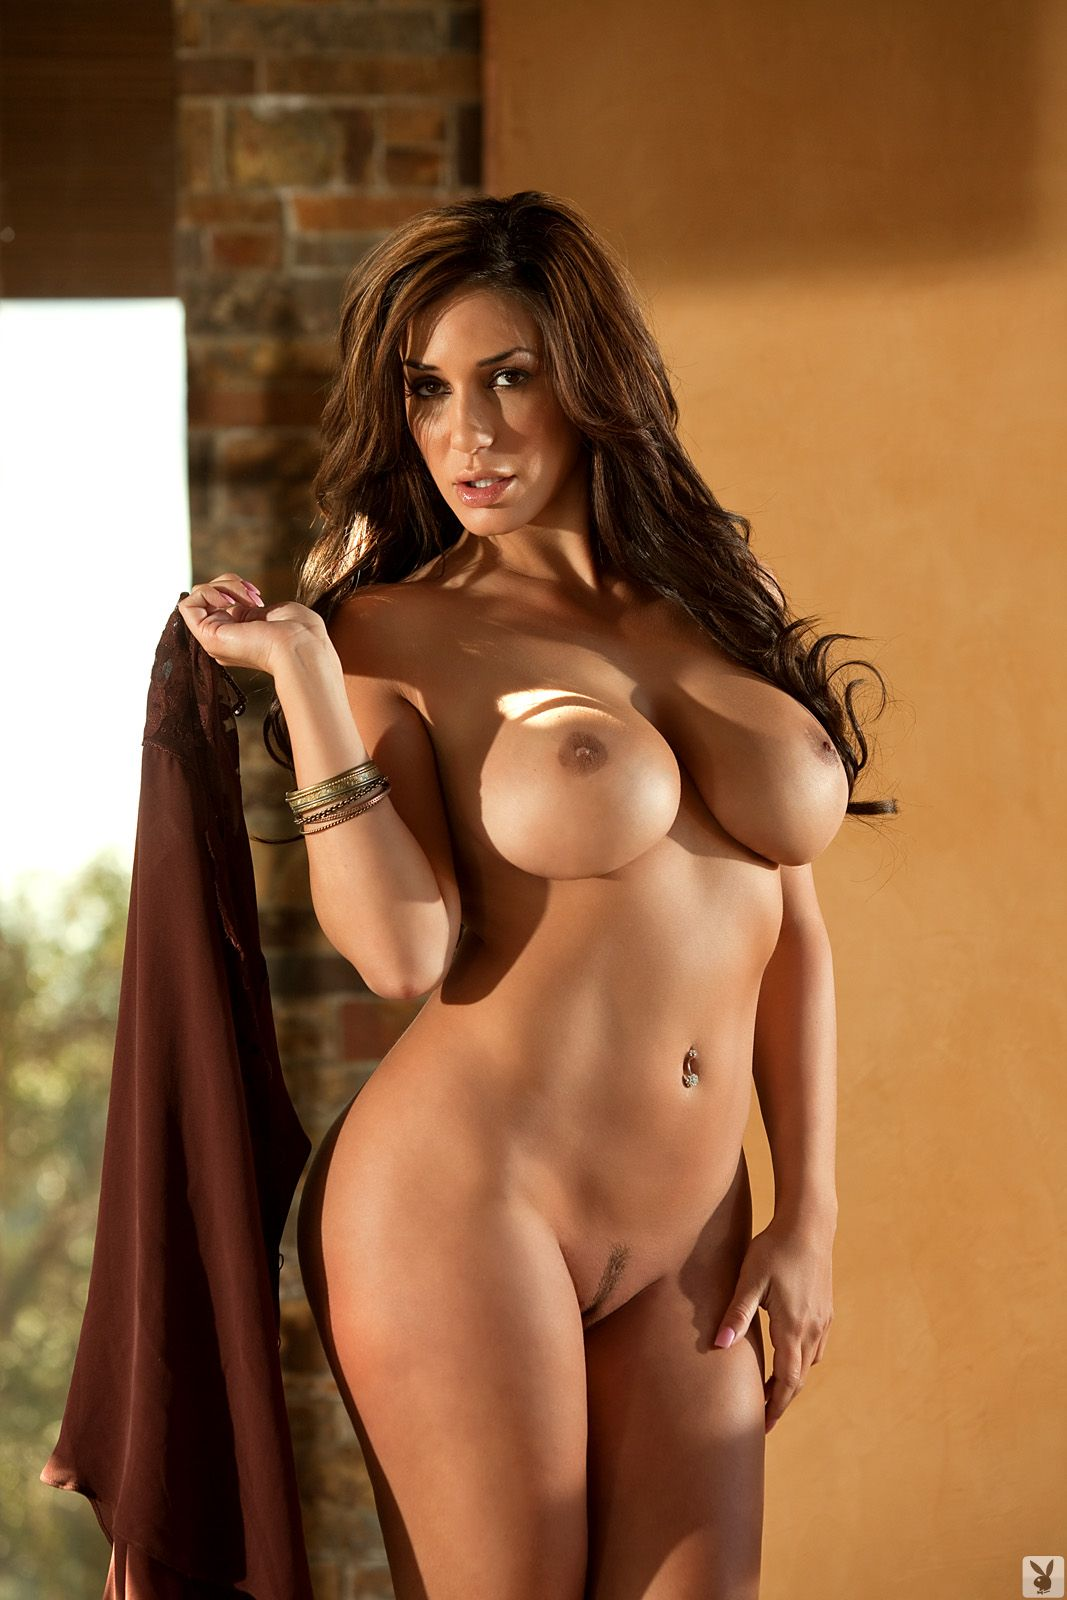 hot-girls-getting-completely-naked-with-big-boobs